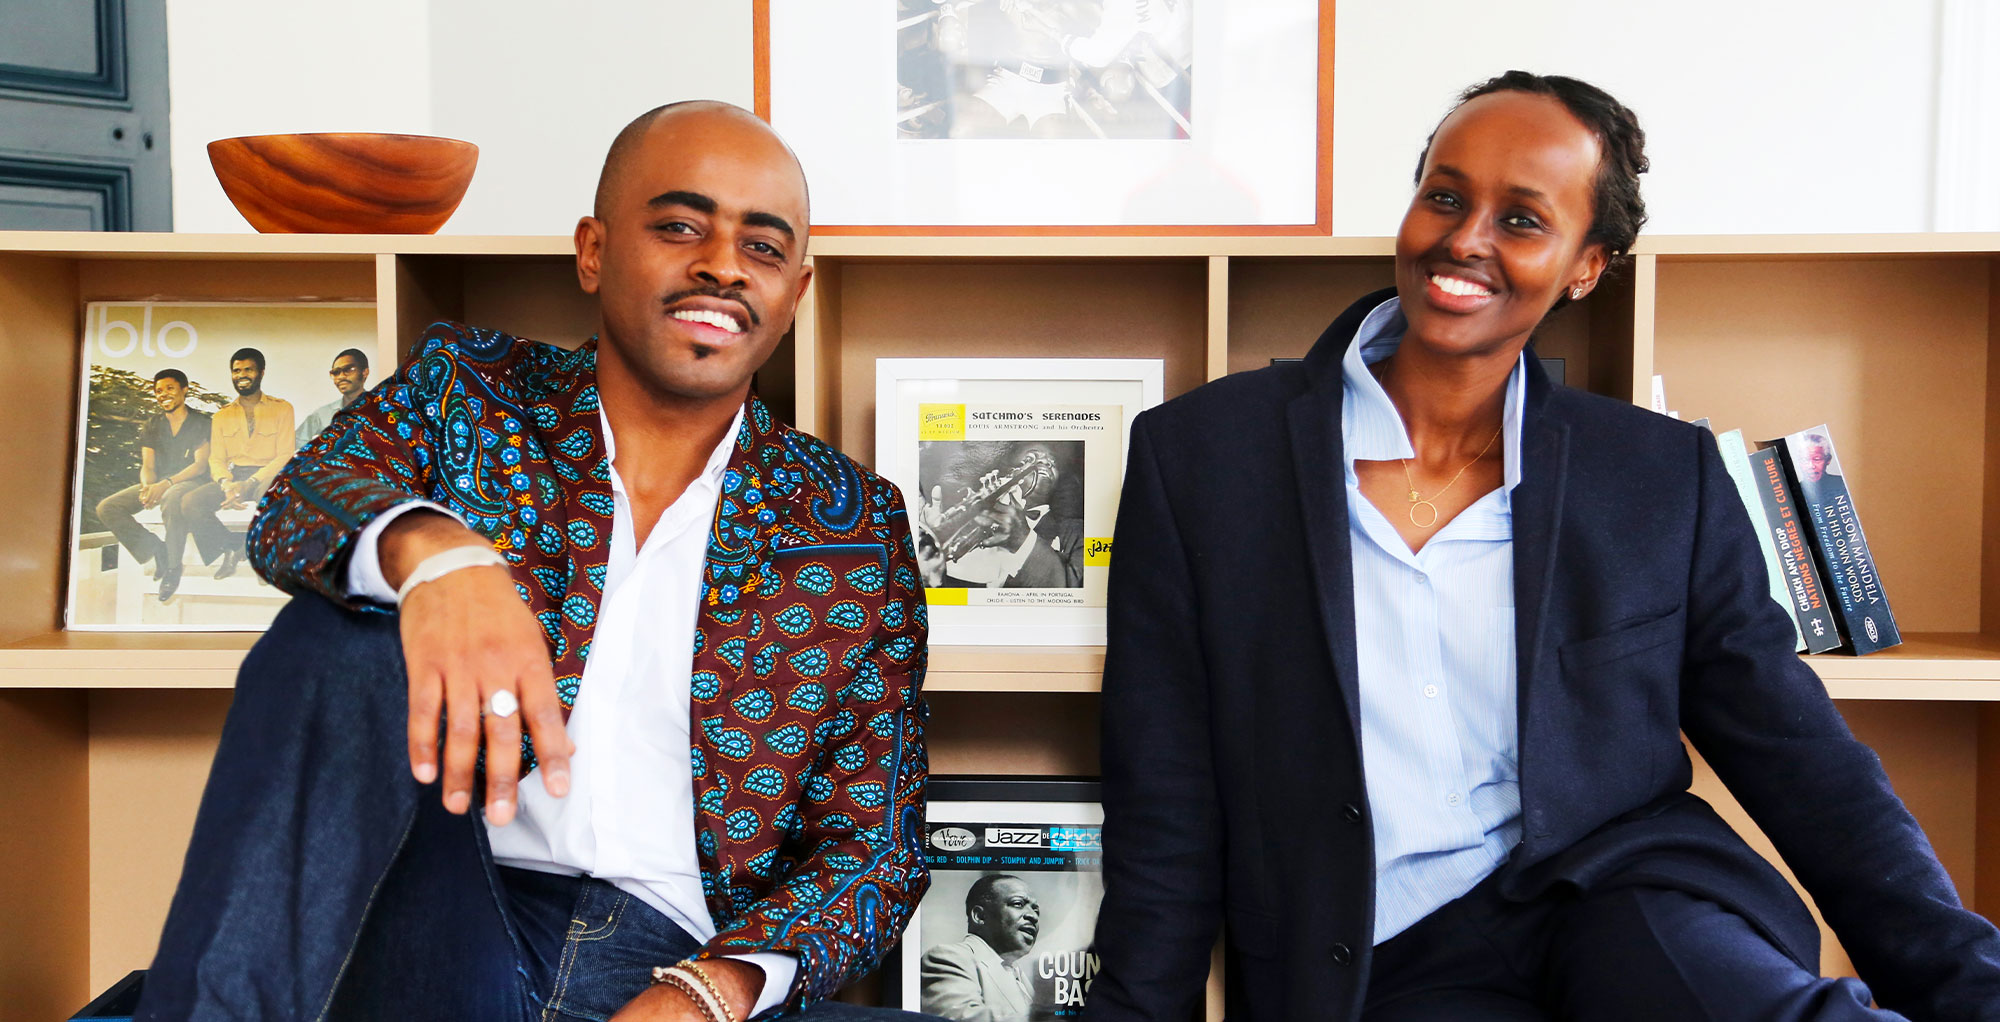 Afrobytes Founders Ammin Youssouf and Haweya Mohamed